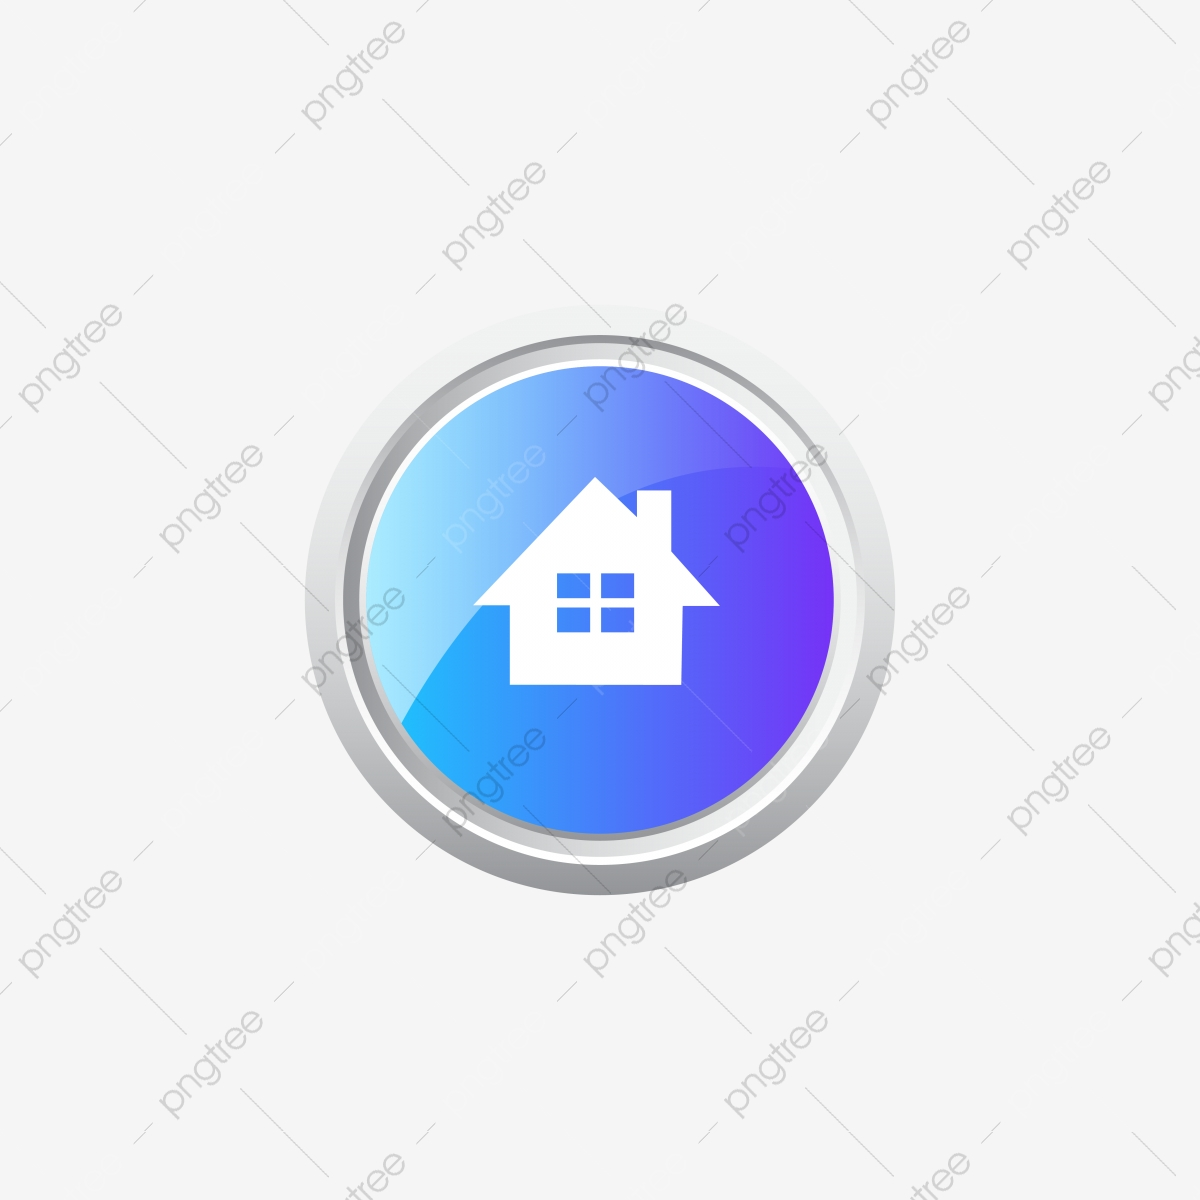 home button png vector psd and clipart with transparent background for free download pngtree https pngtree com freepng glossy home button 5415681 html